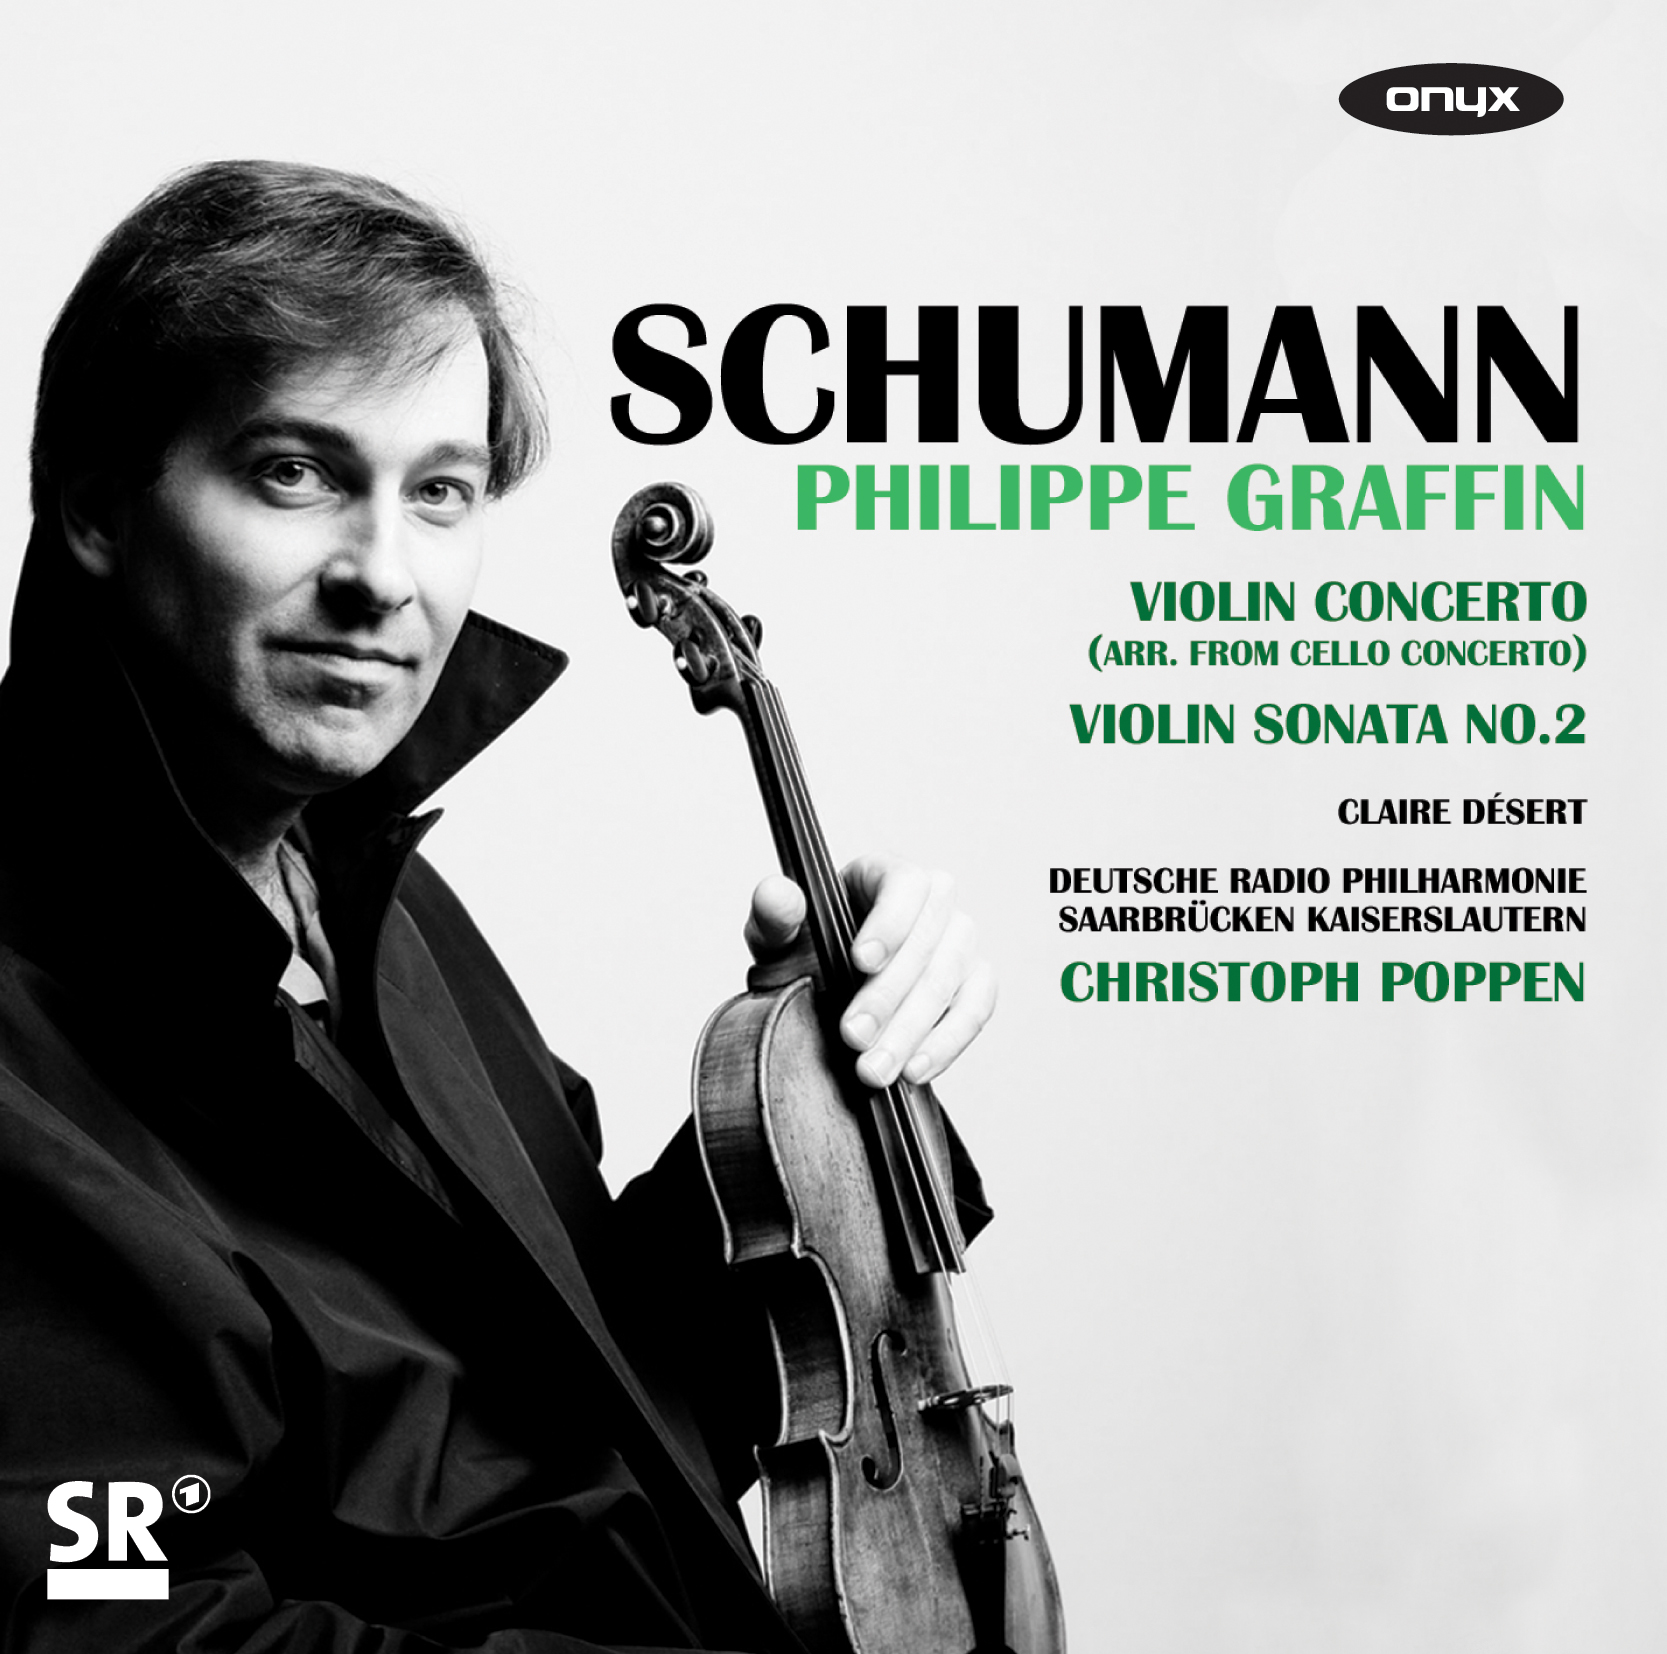 Schumann: Violin Concerto (Transcr. of Cello Concerto); Violin Sonata No. 2